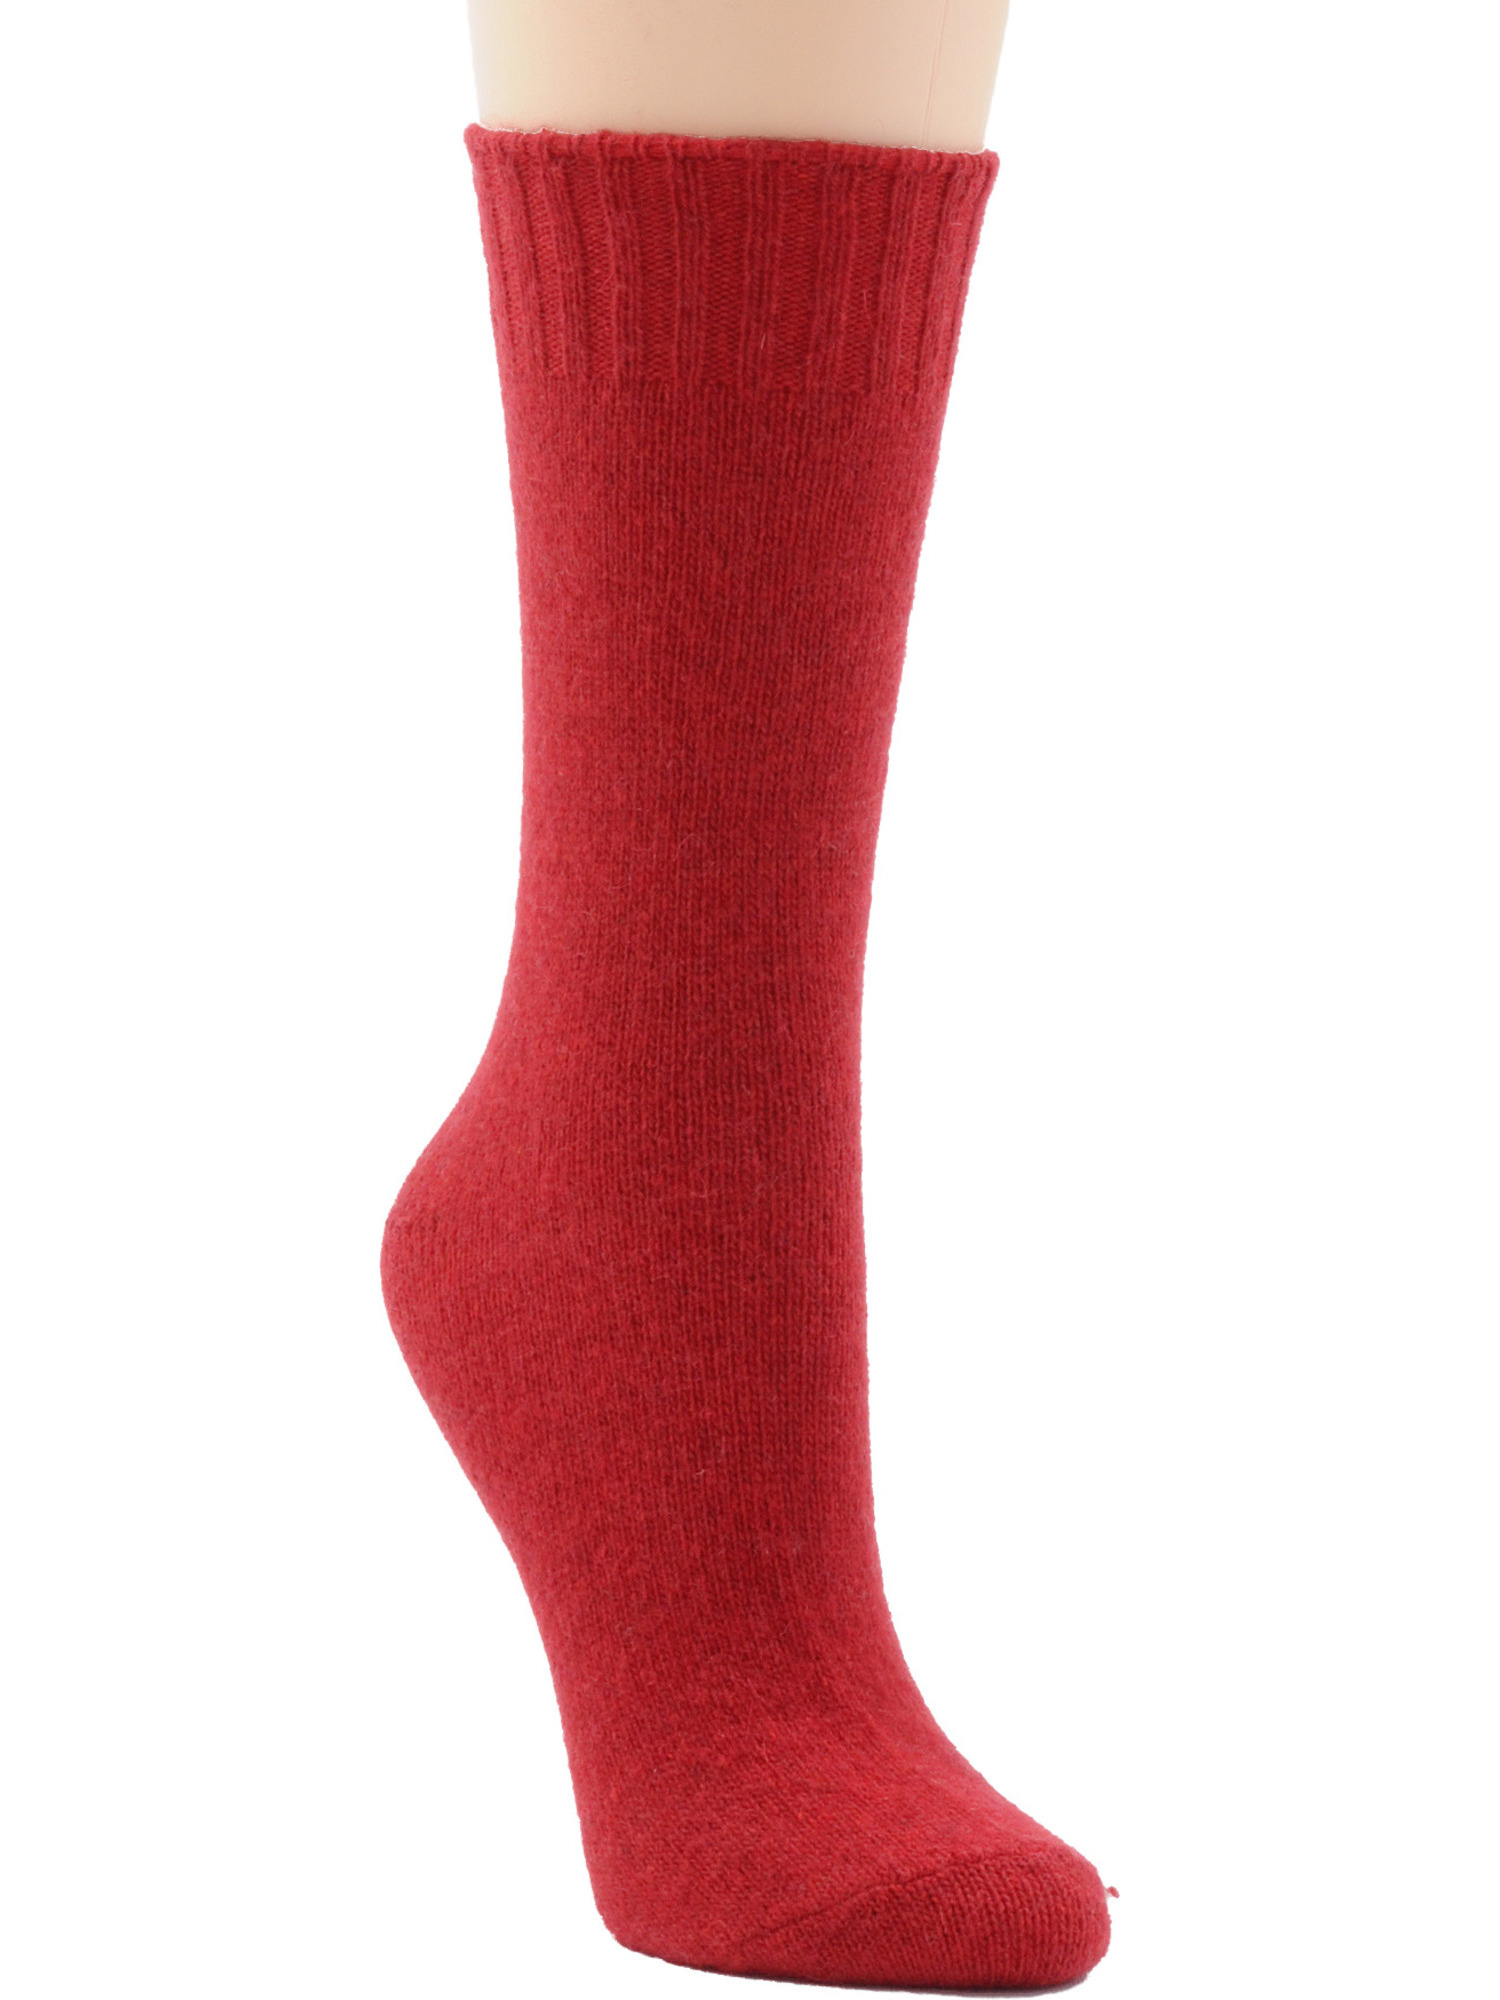 Womens Socks Crew Virgin Wool Cashmere Blend 23 Color Choices Made USA